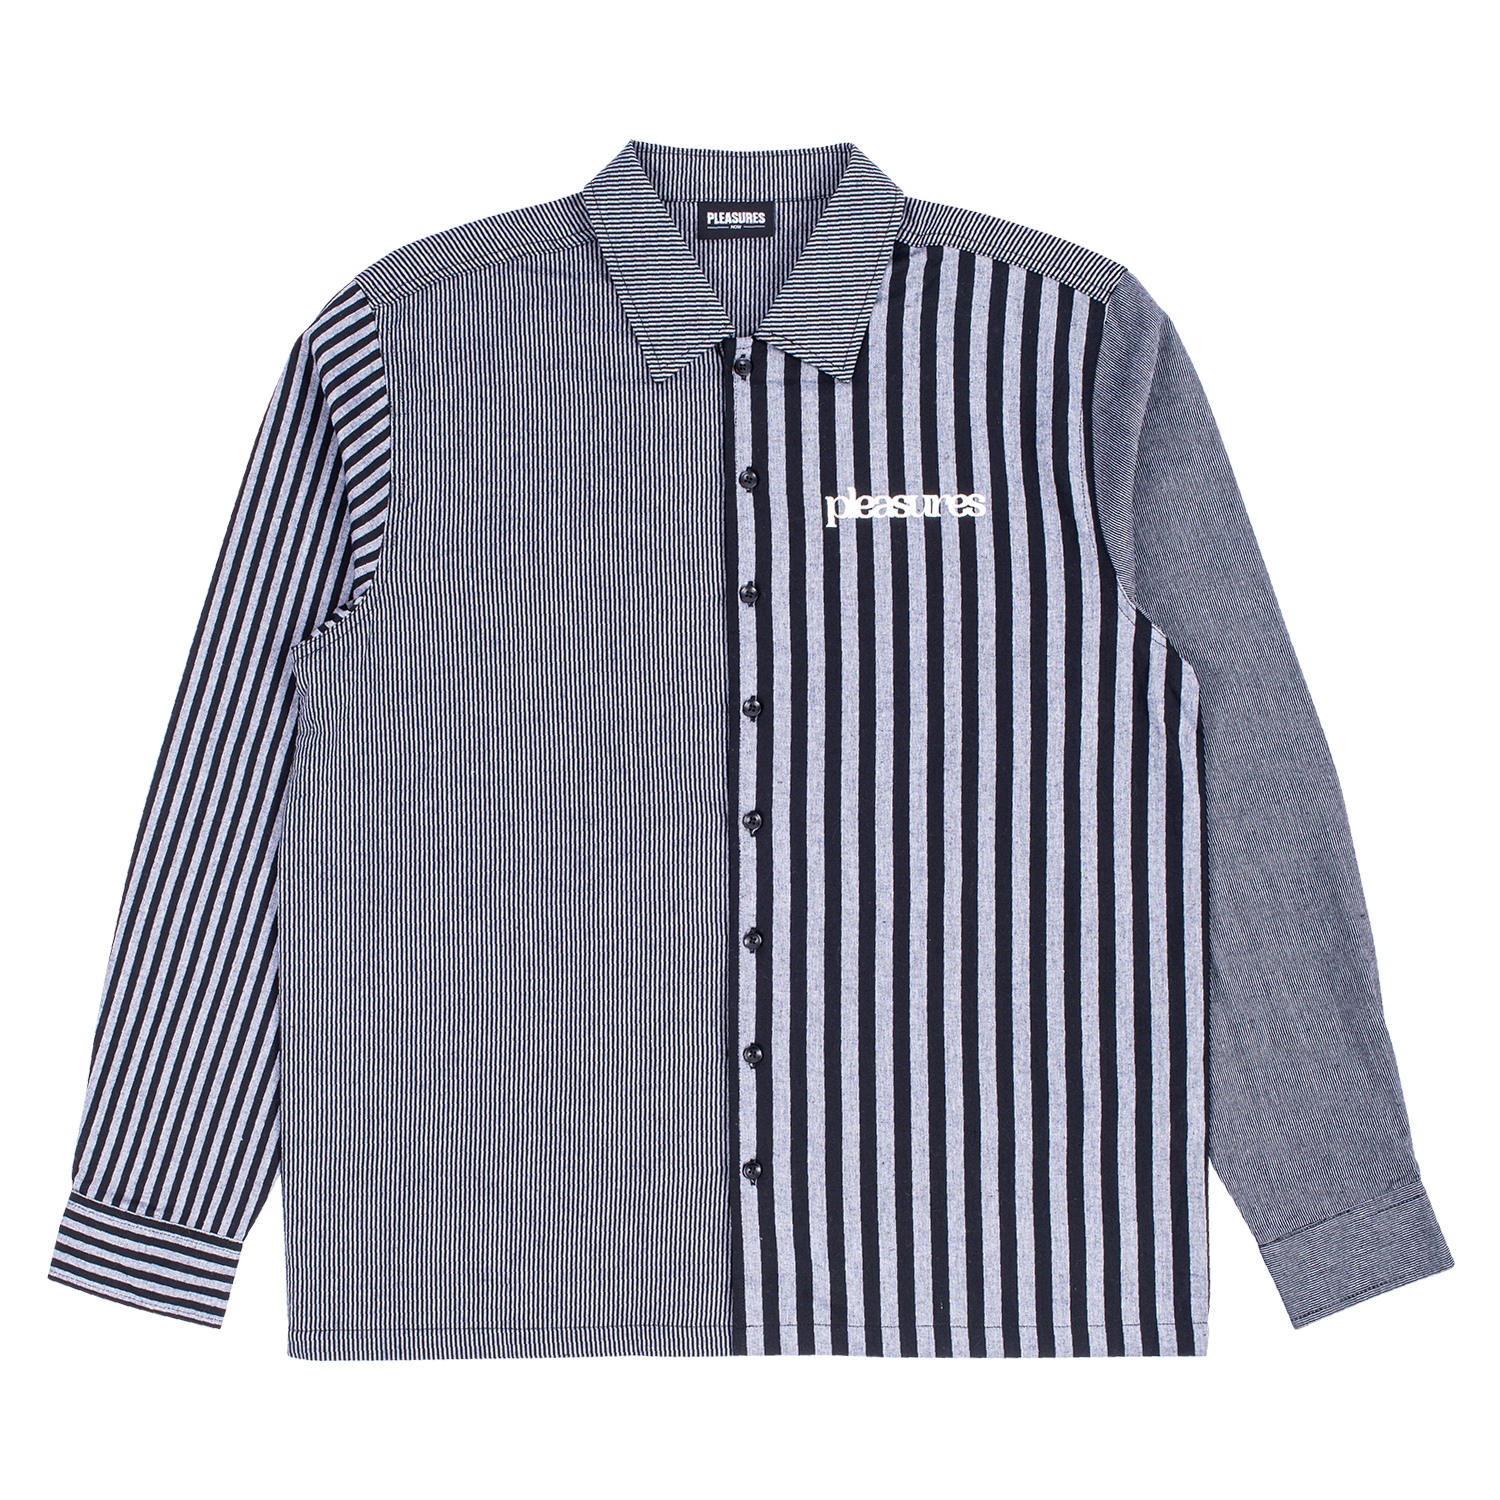 【PLEASURES/プレジャーズ】SOLAR MULTI STRIPED L/S BUTTON DOWN 長袖シャツ / GREY